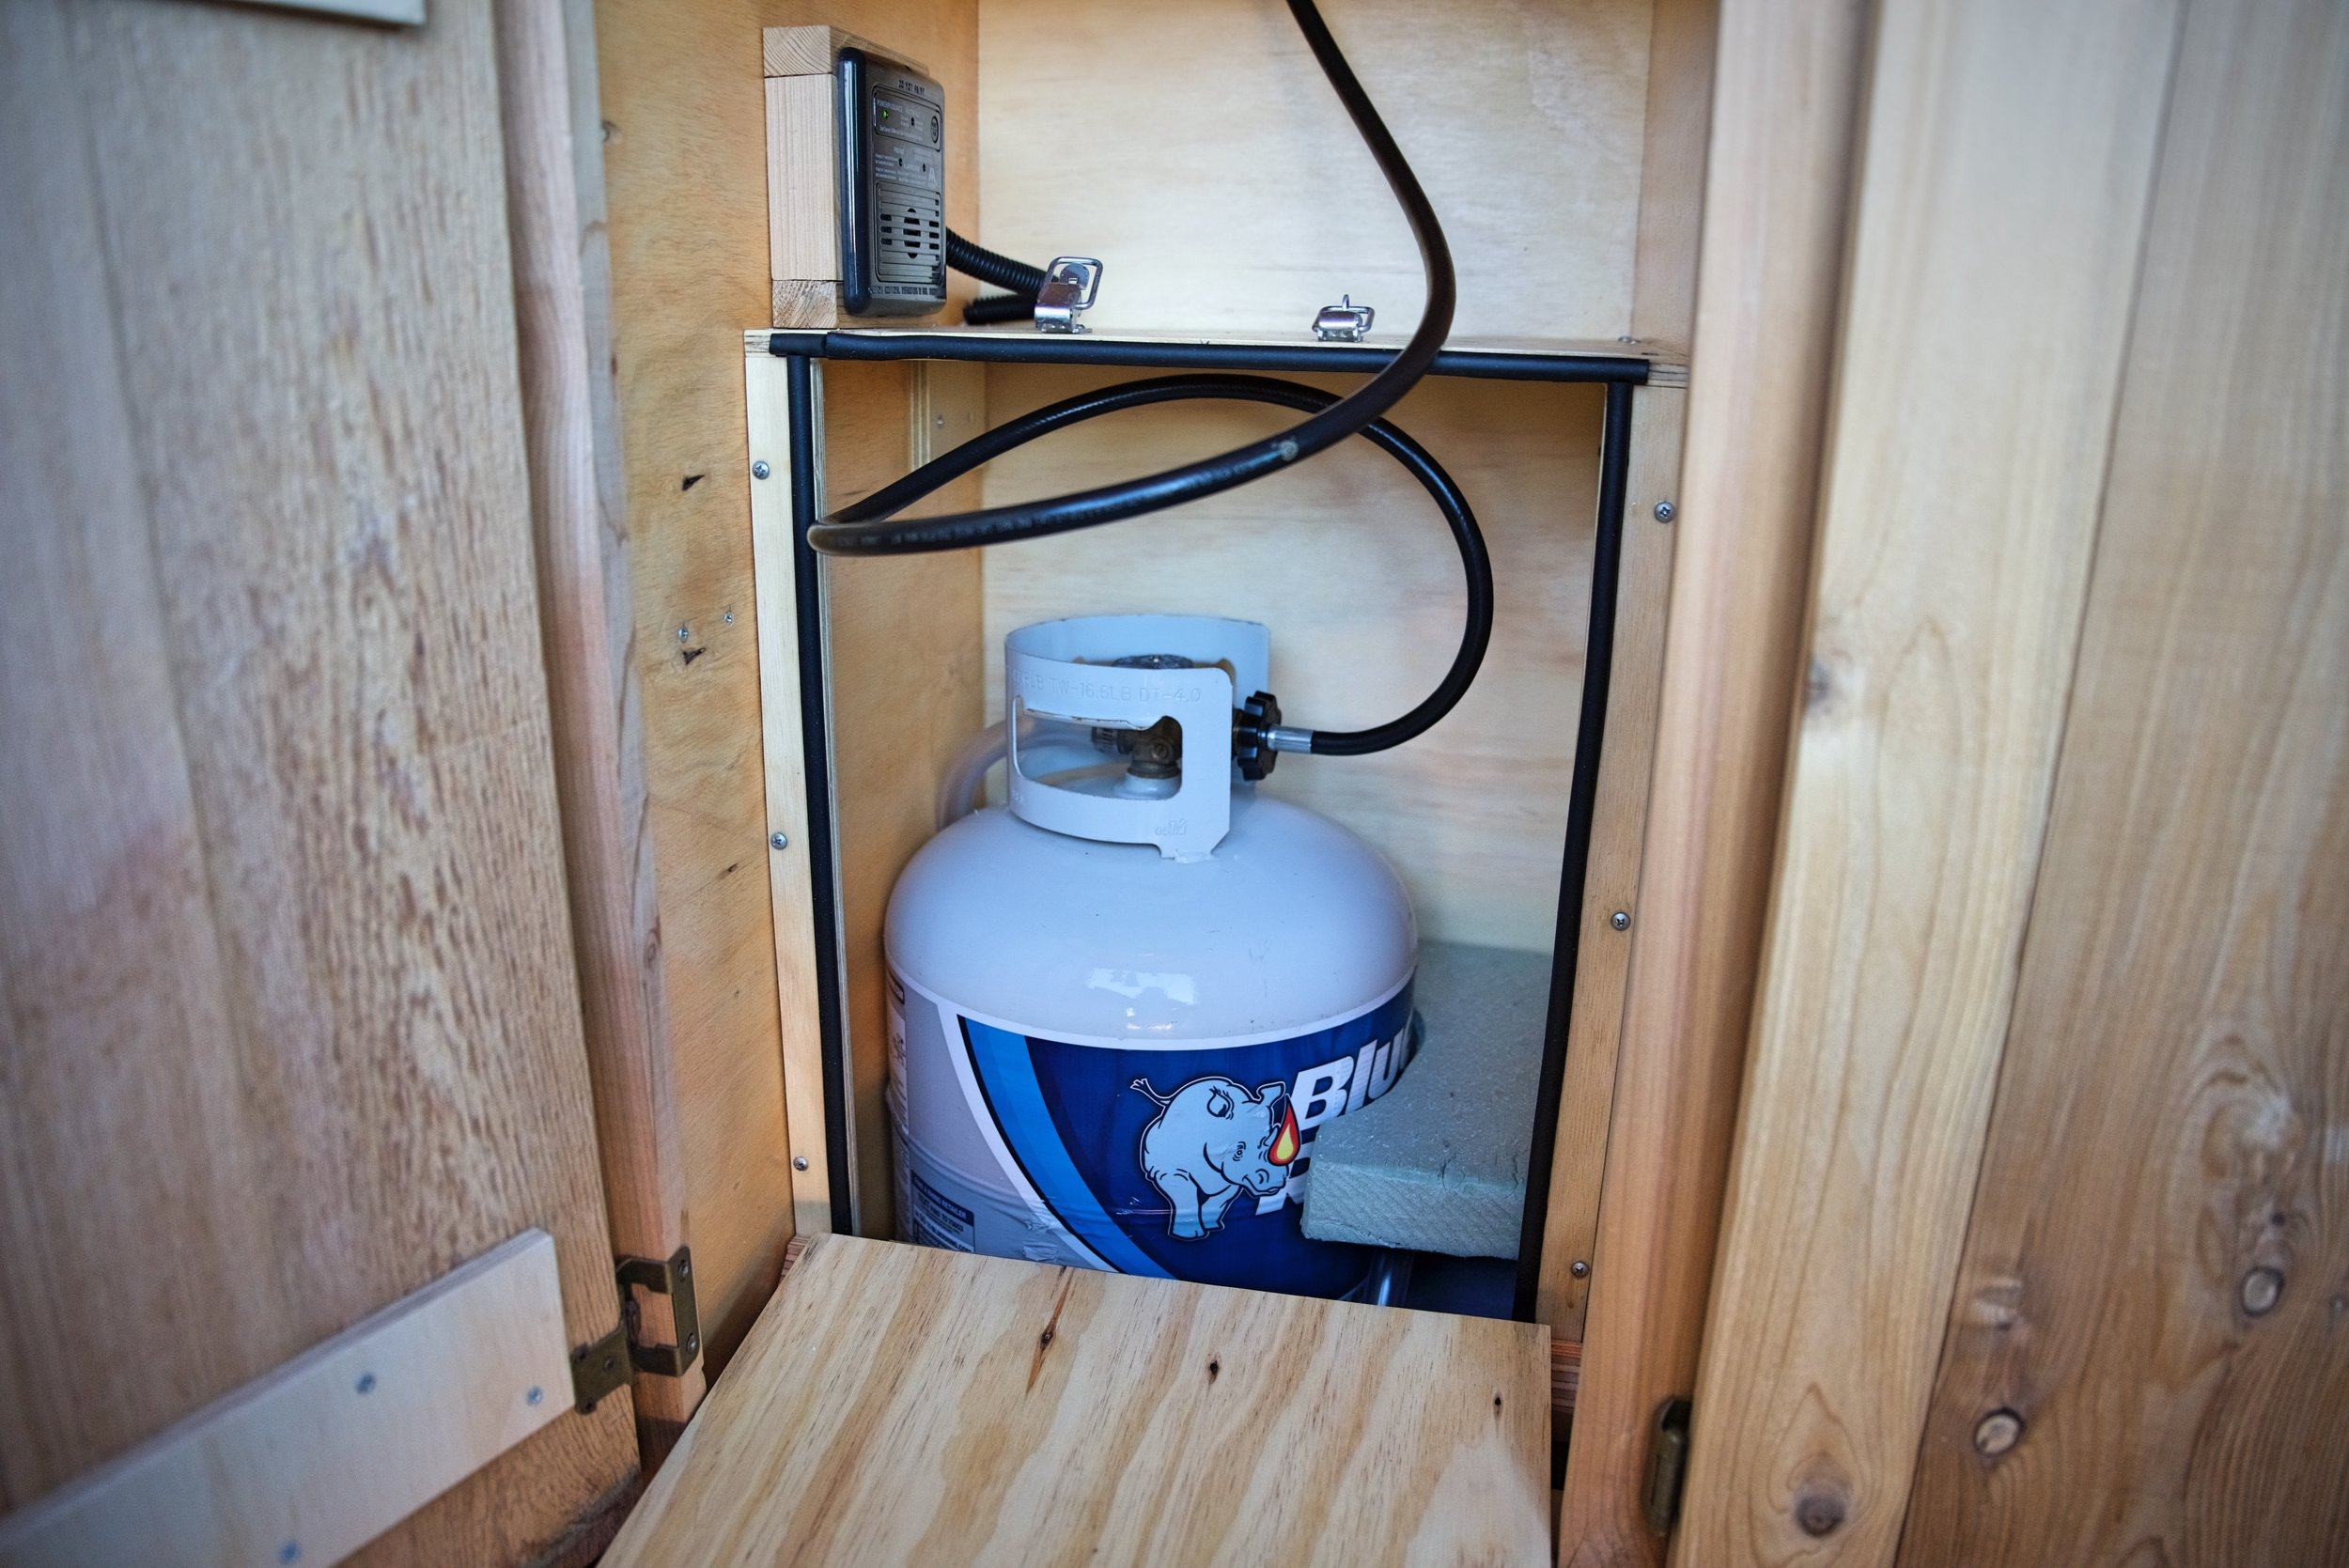 Including a full size propane tank in our has saved us over $500 in fuel costs. Our DIY propane locker built into the cabinetry of our van allows us to store and use the propane more safely for cooking.